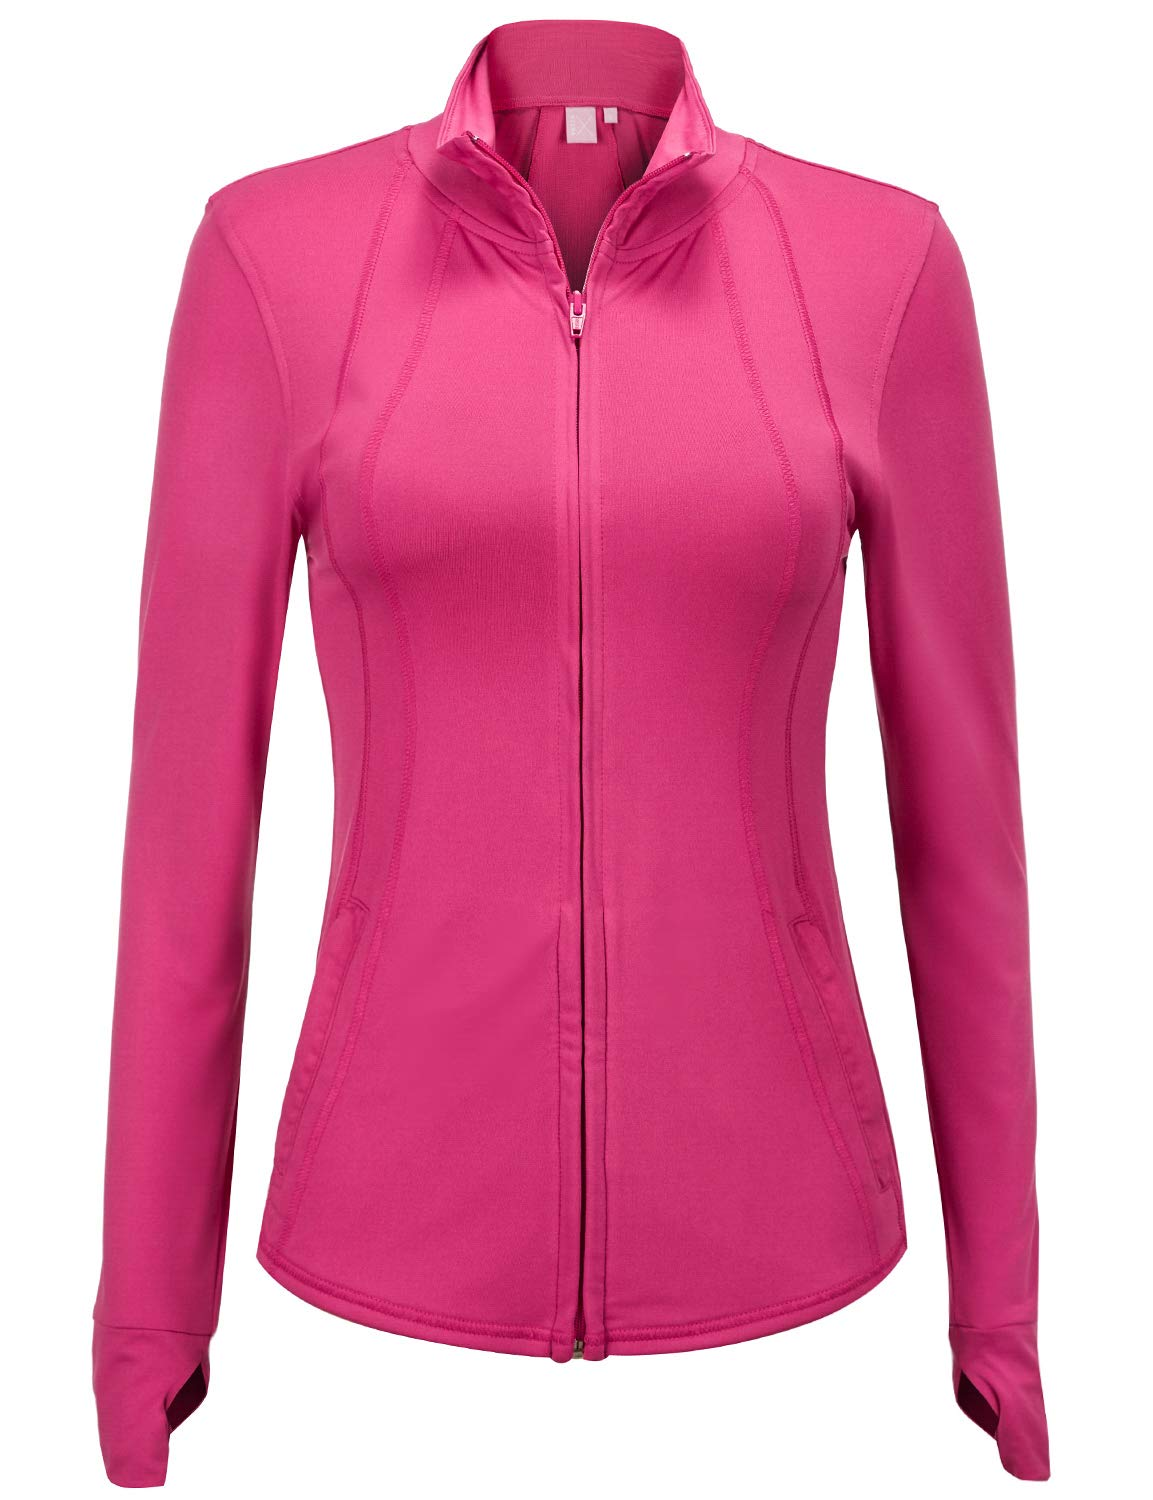 Regna X Women's Full Zip Up Workout Yoga Stretchy Fitness Track Jacket Pink 3XL